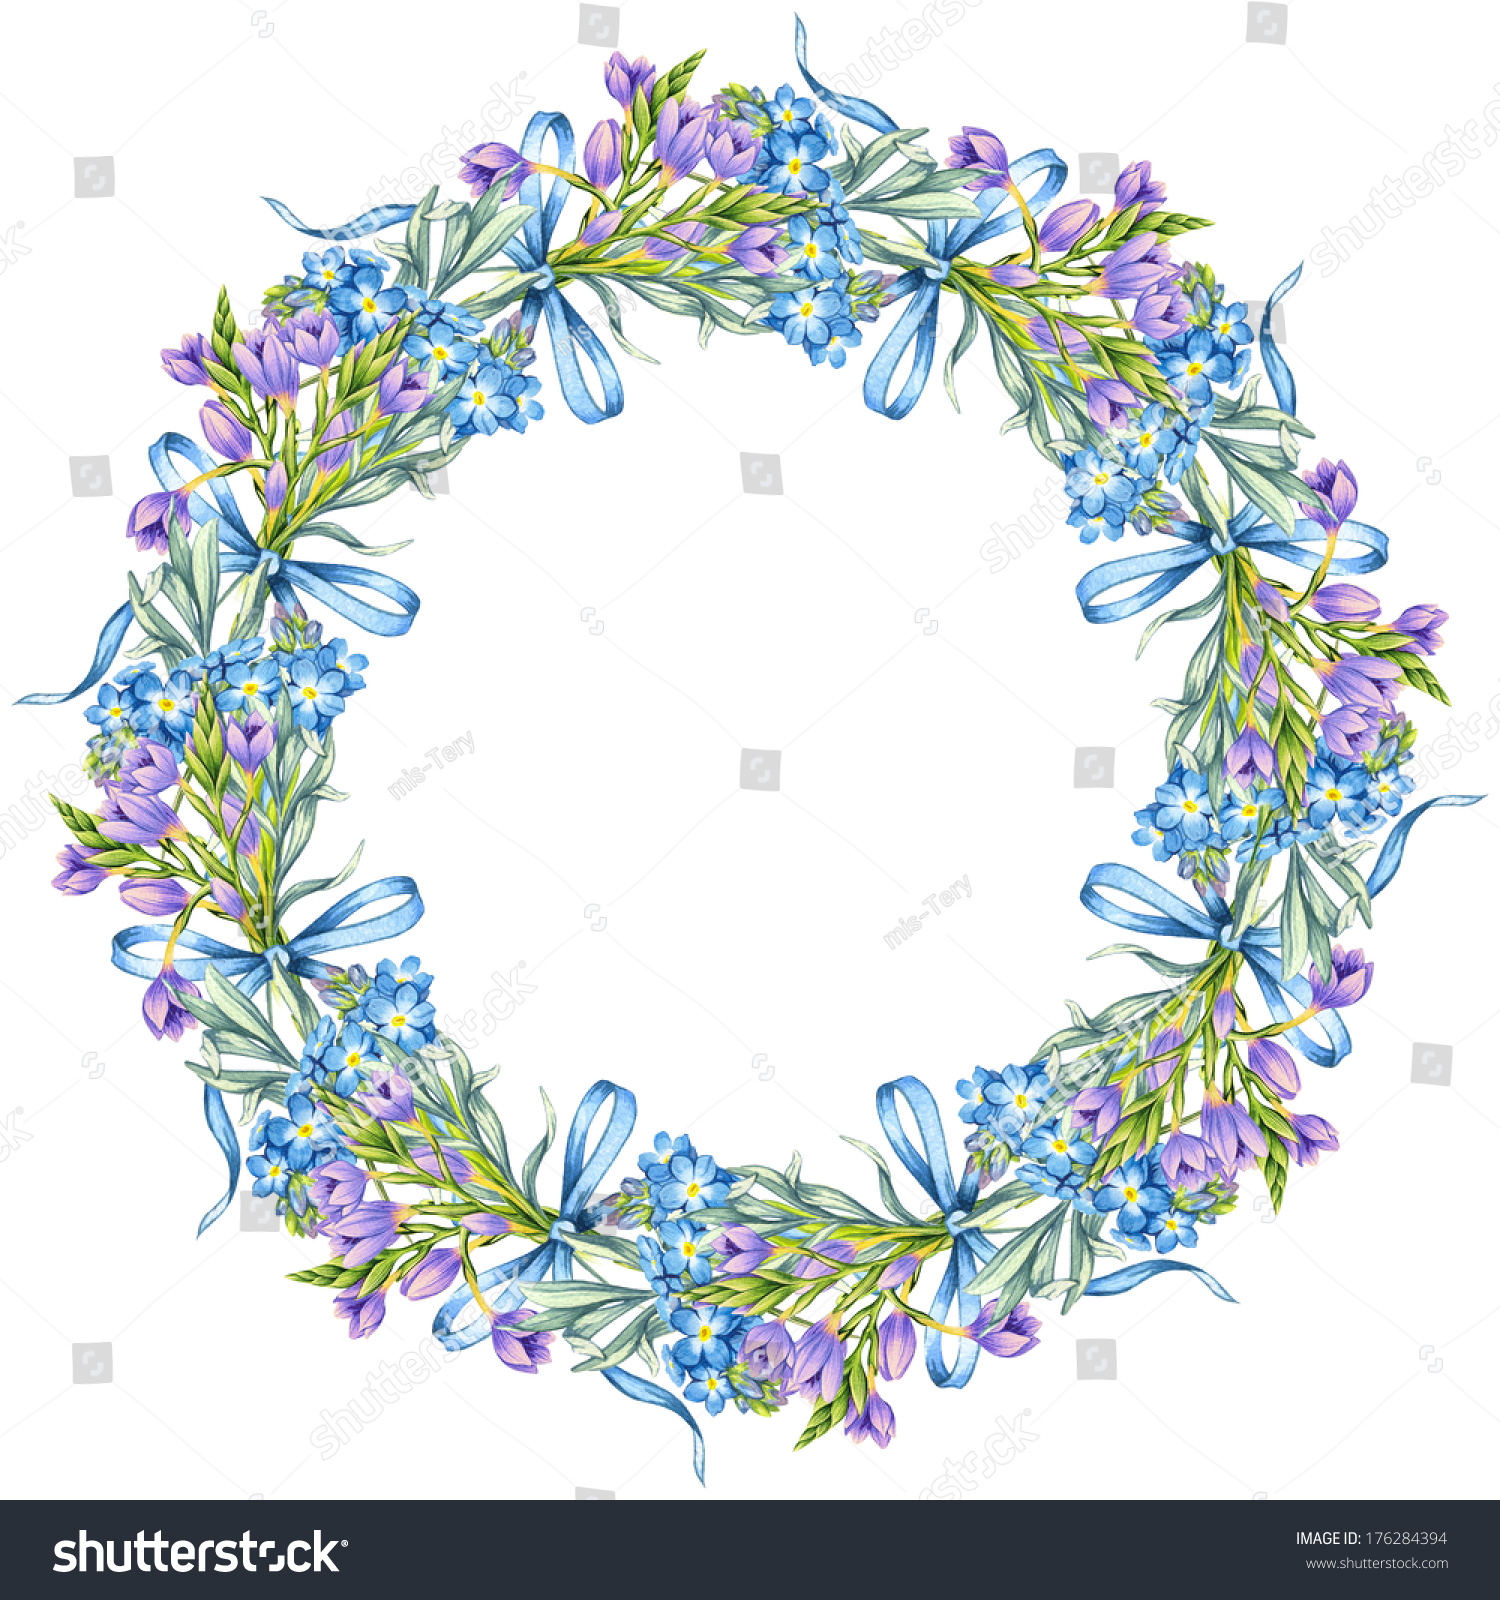 template with a wreath of spring flowers flower frame isolated on